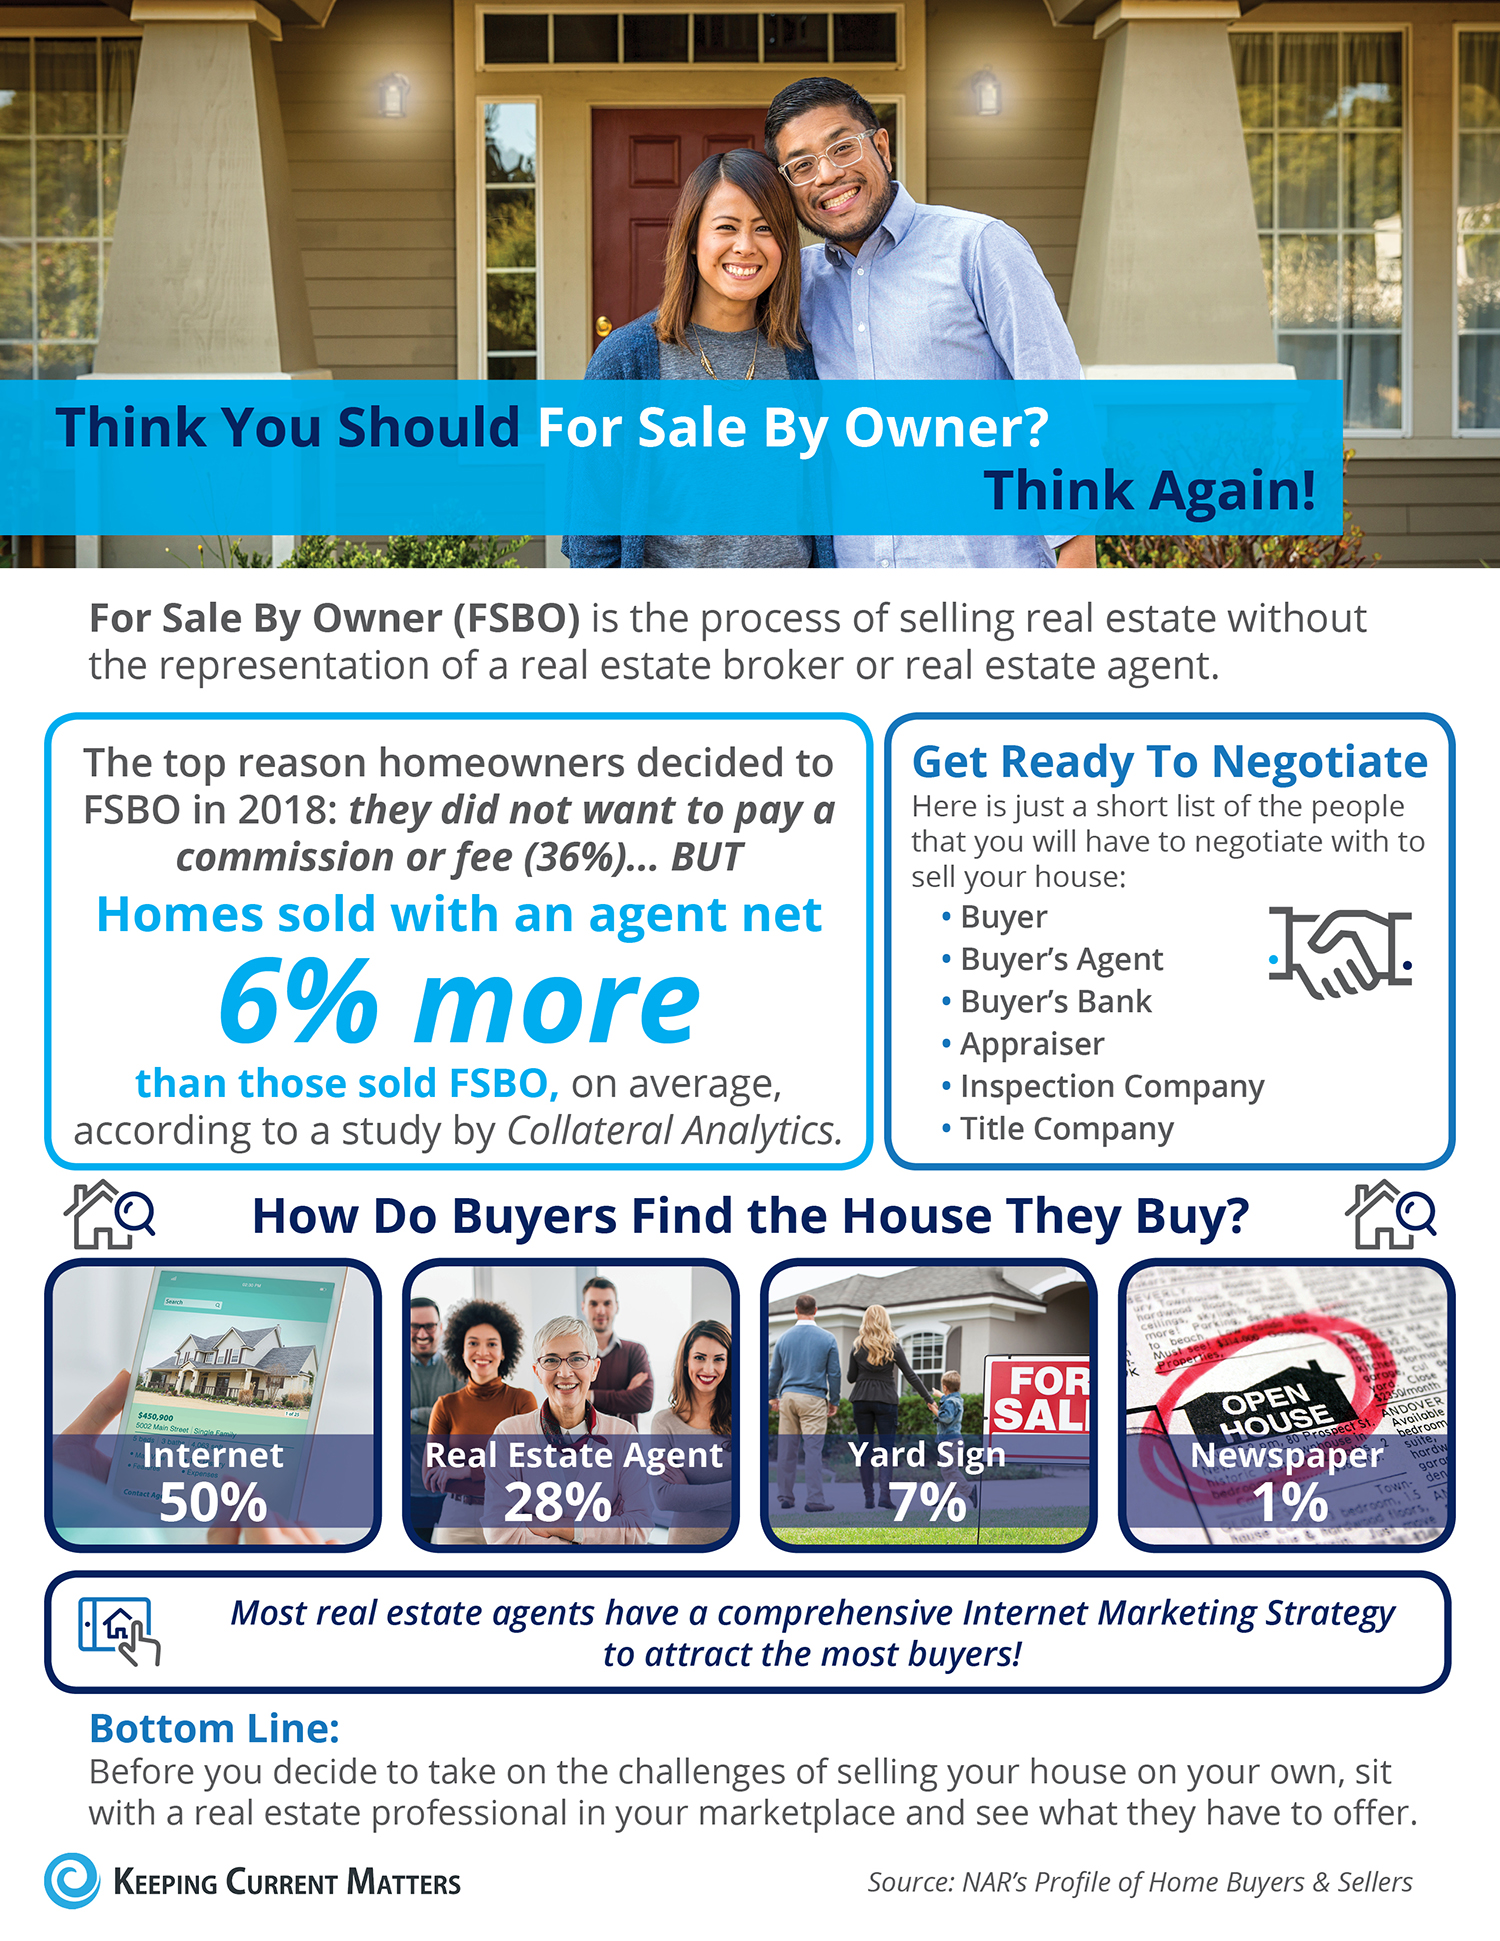 Think You Should For Sale By Owner? Think Again! [INFOGRAPHIC] | Keeping Current Matters